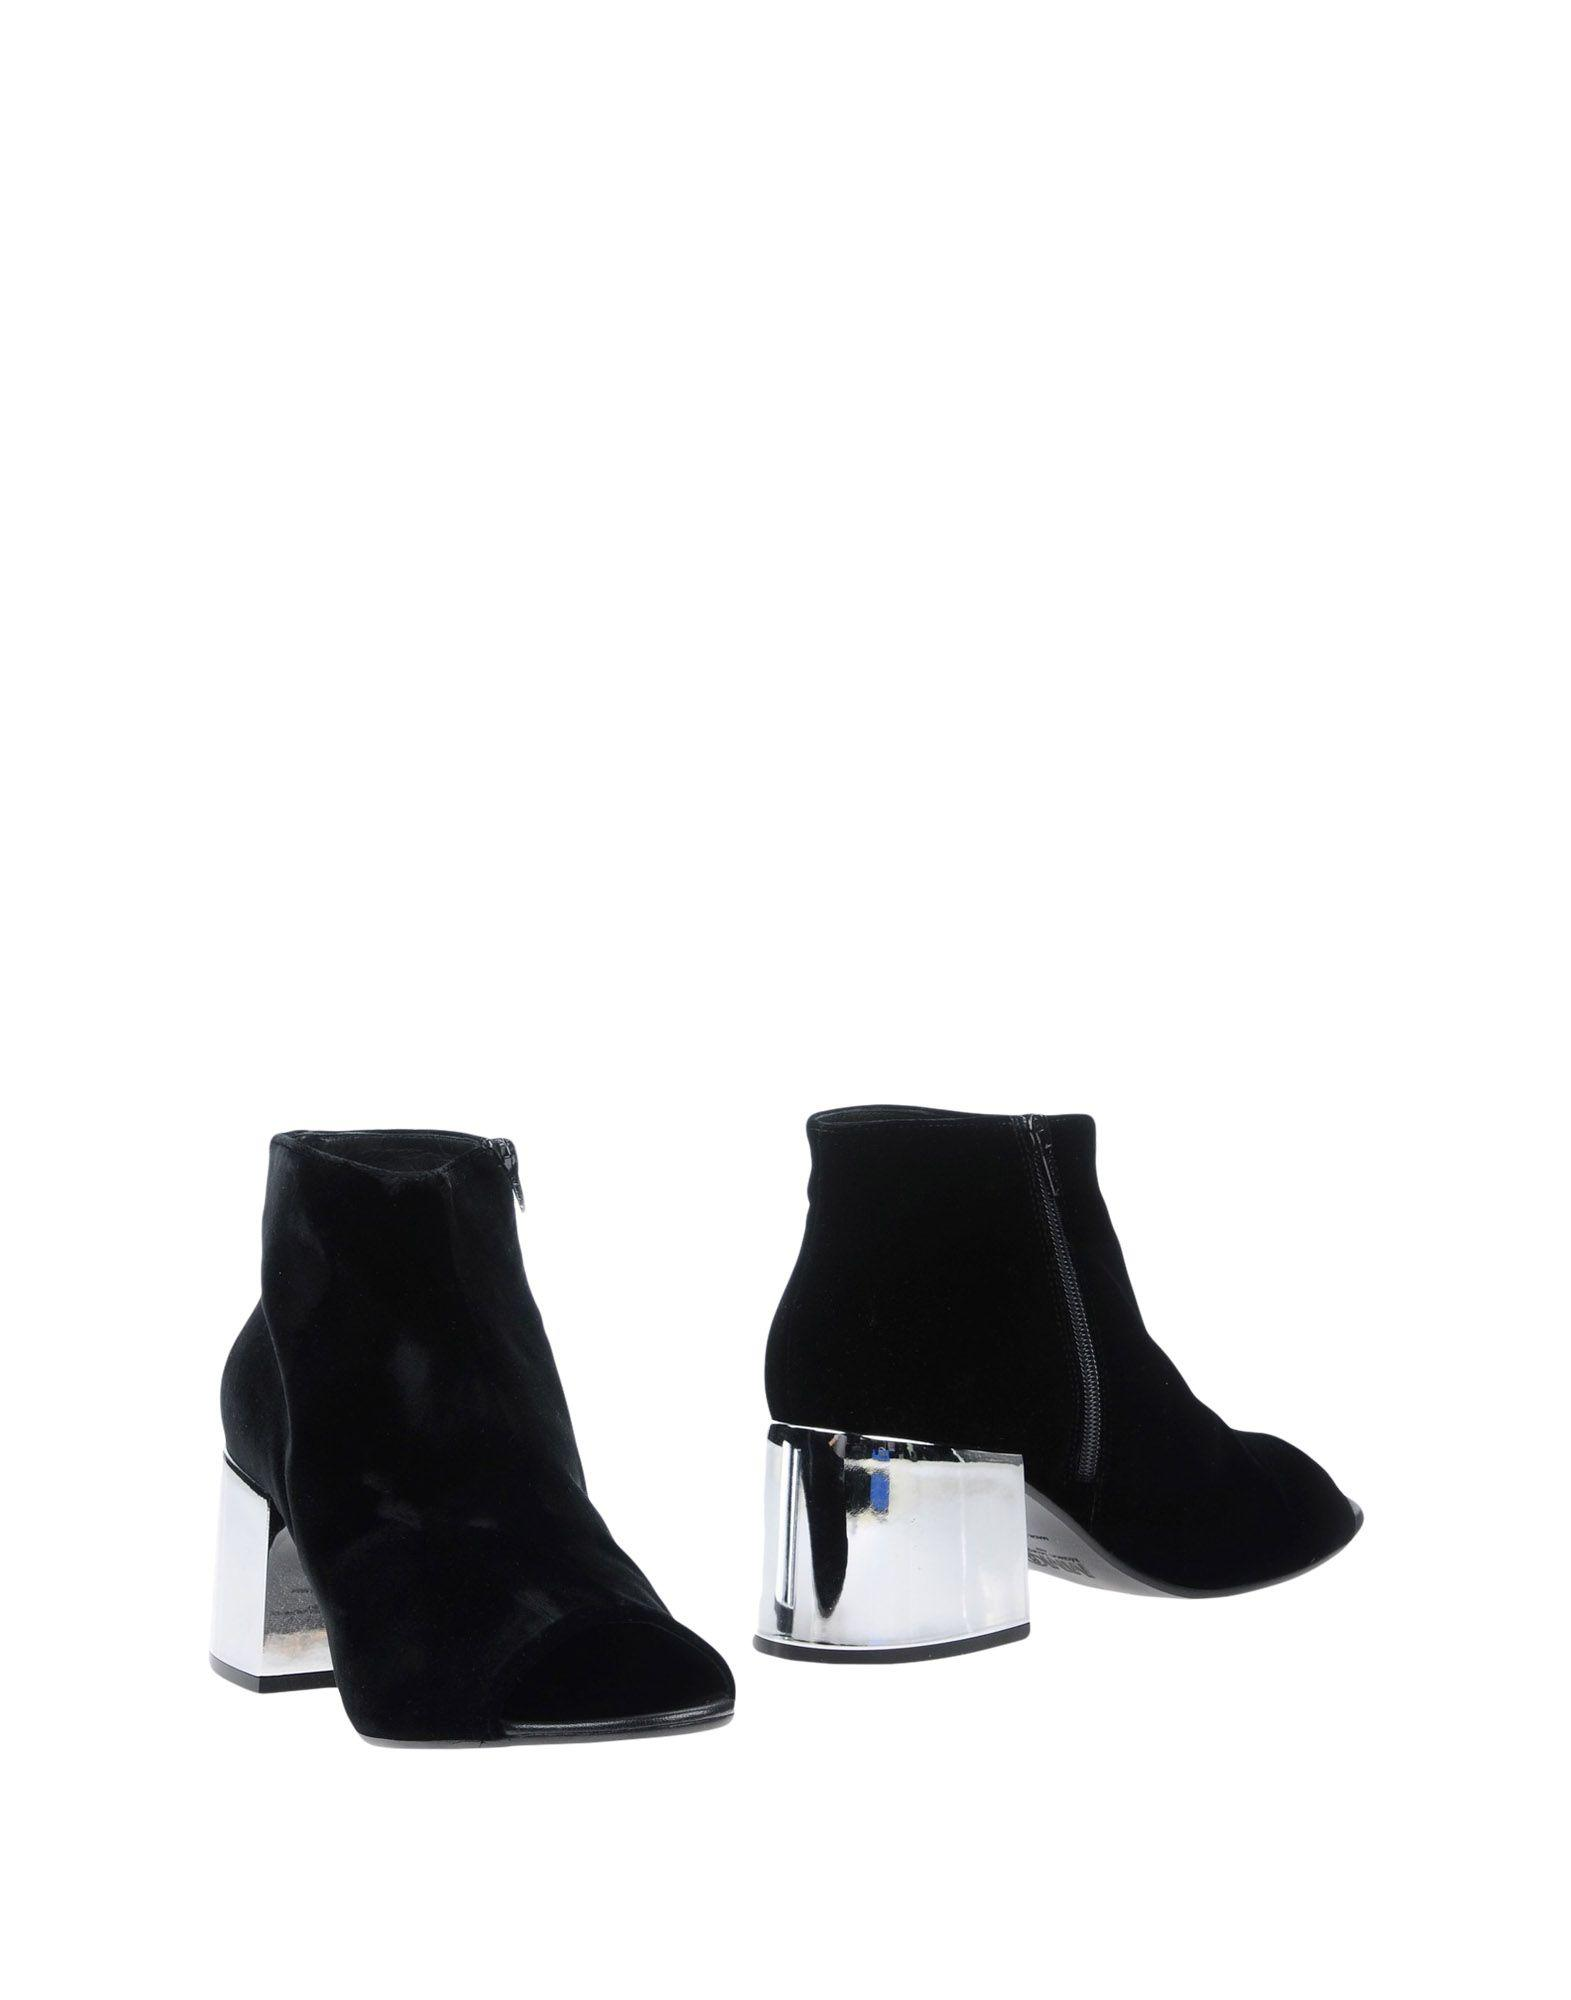 Mm6 Maison Margiela Ankle Boot In Black